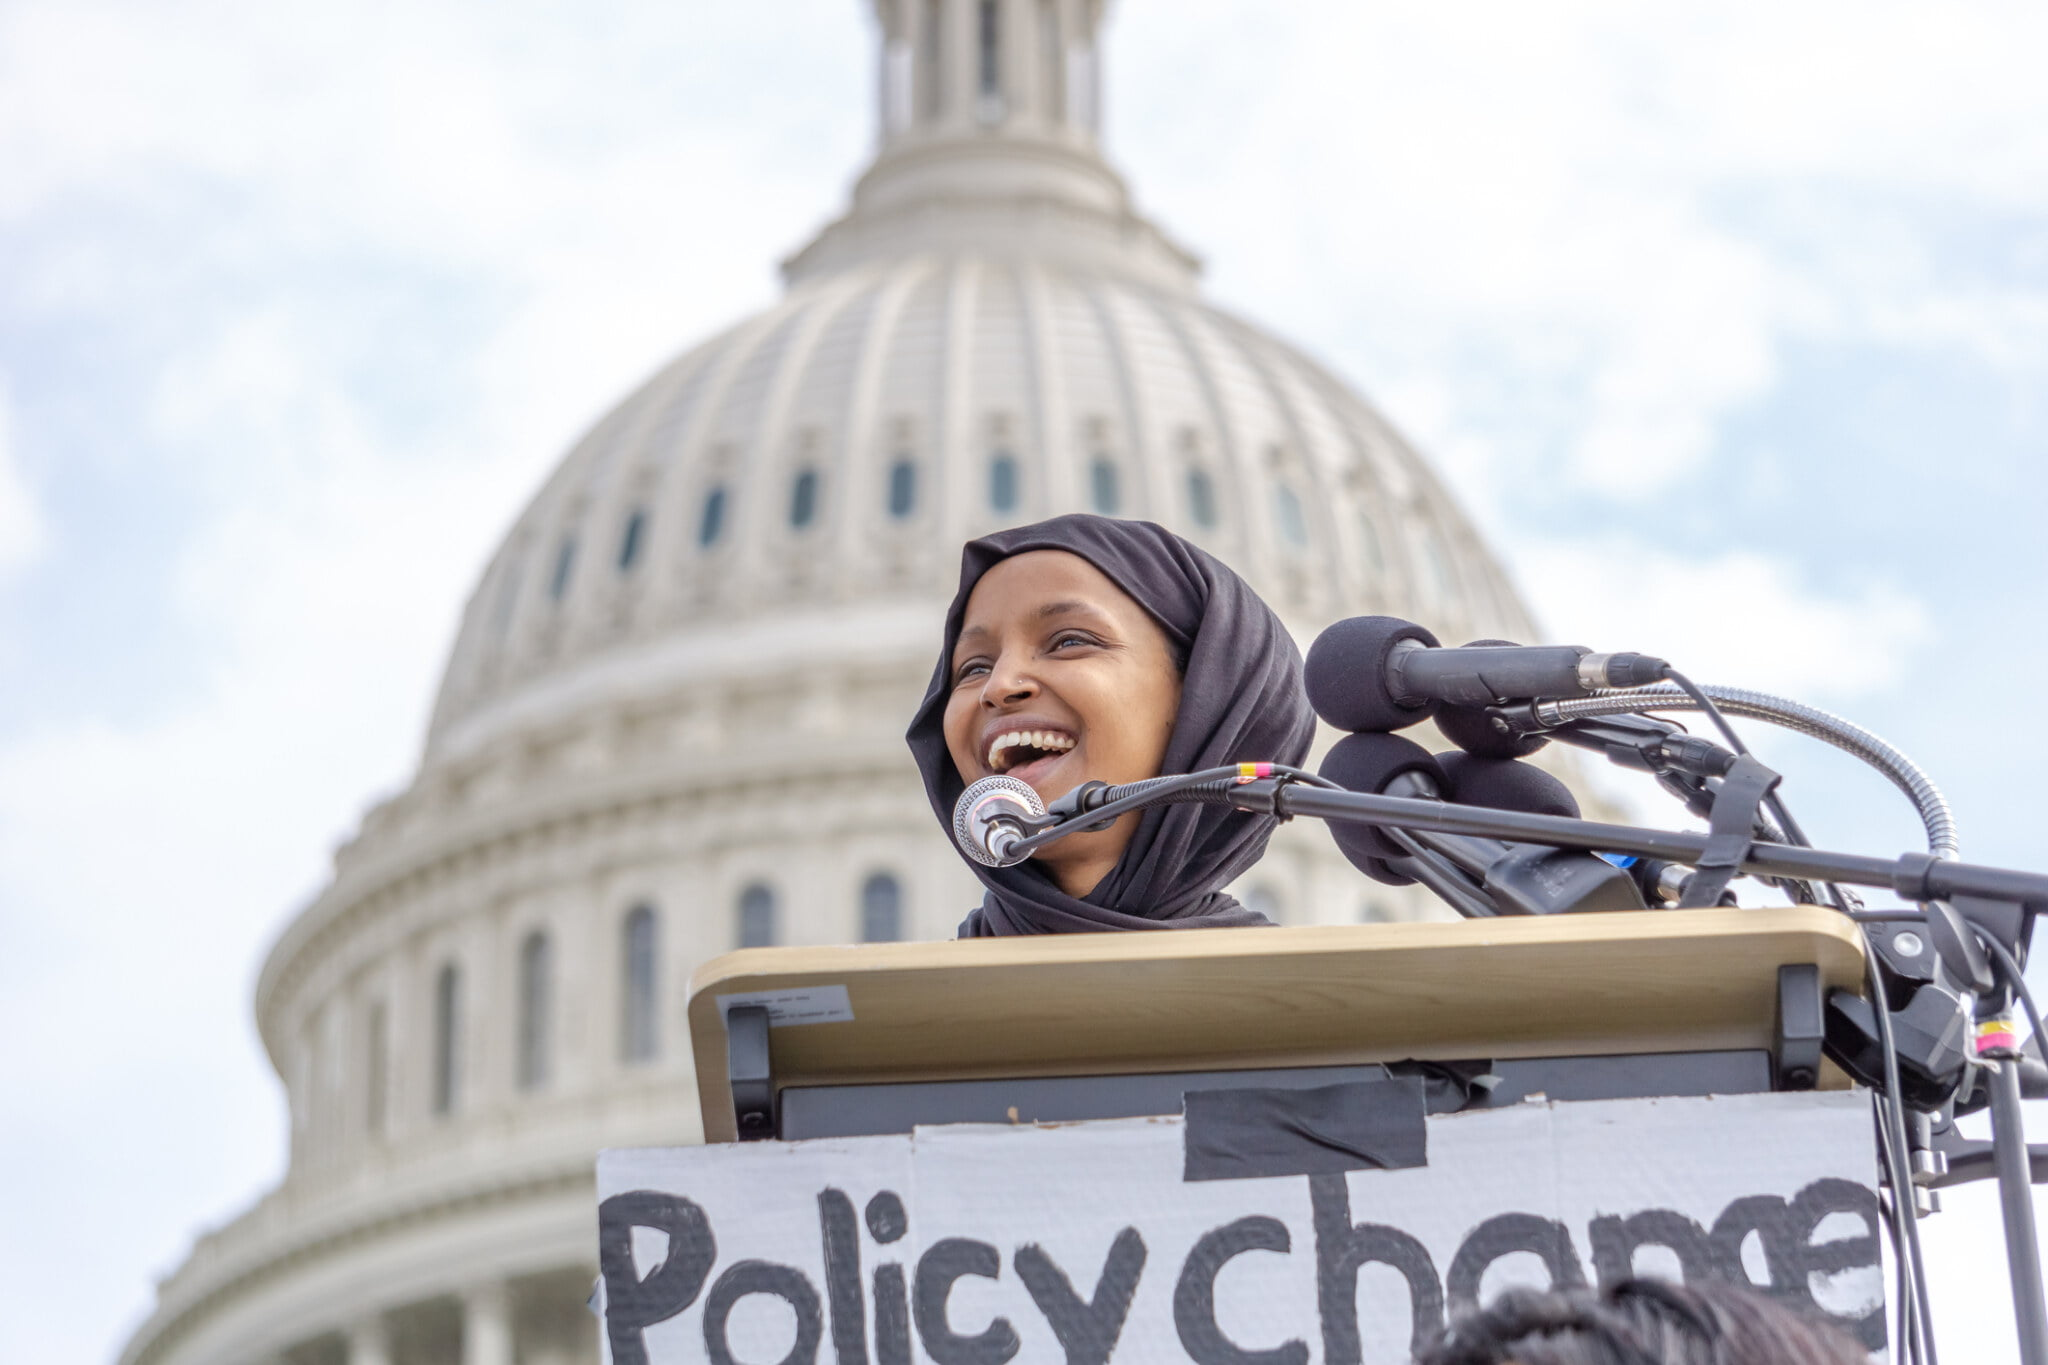 Comparison to Taliban and Hamas was a Compliment, Ilhan Omar Clarifies